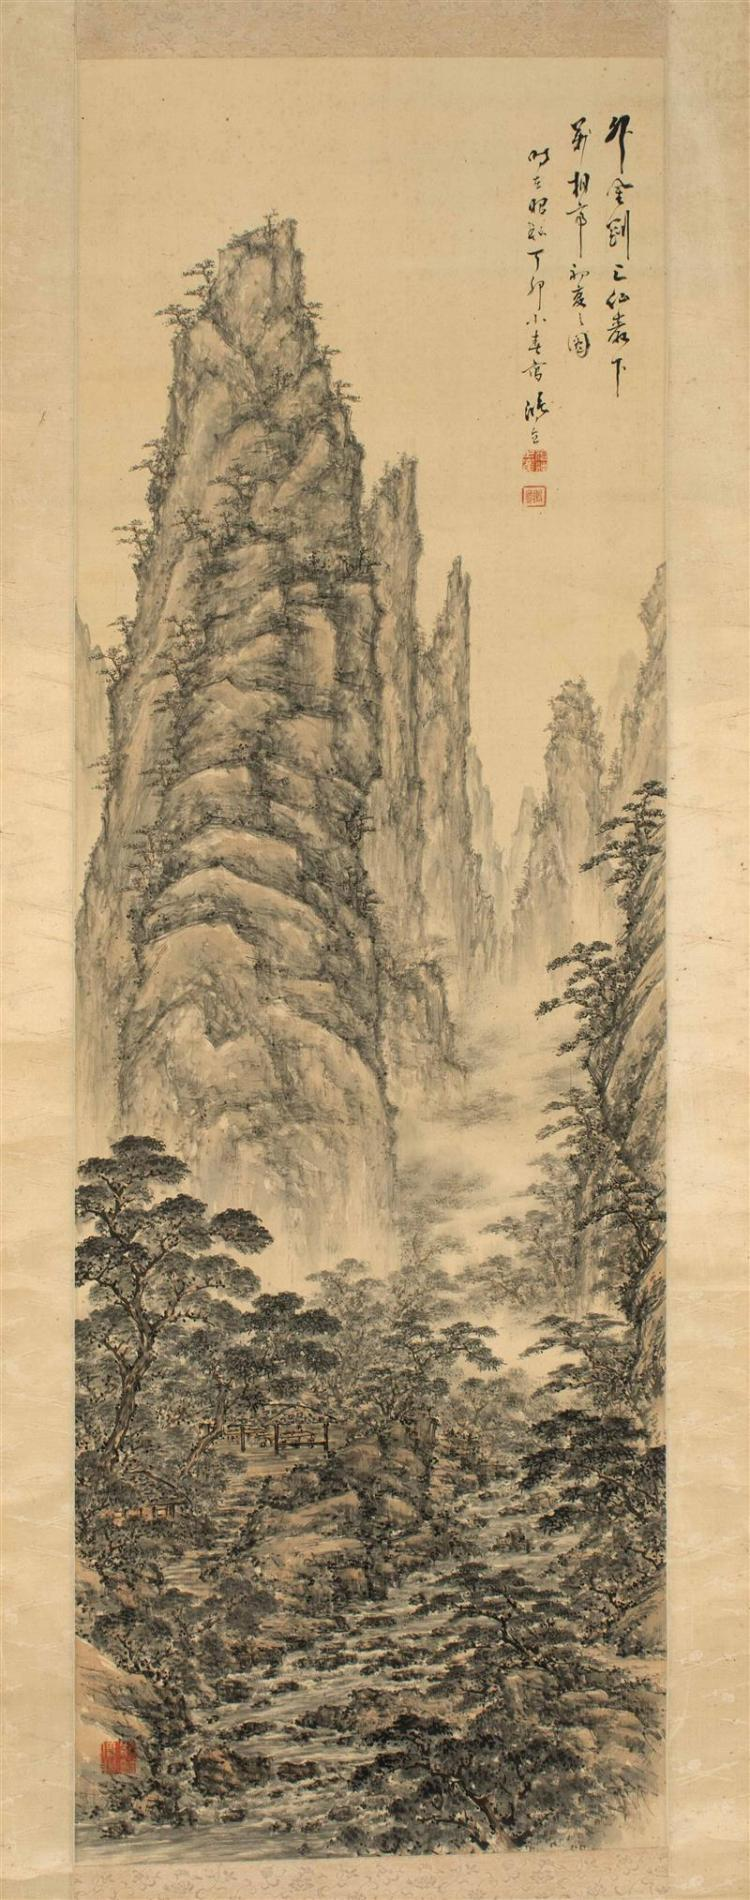 SCROLL PAINTING ON SILK In Nanga style, with towering mountains above a rustic cottage and flowing river. Marked with calligraphy an...